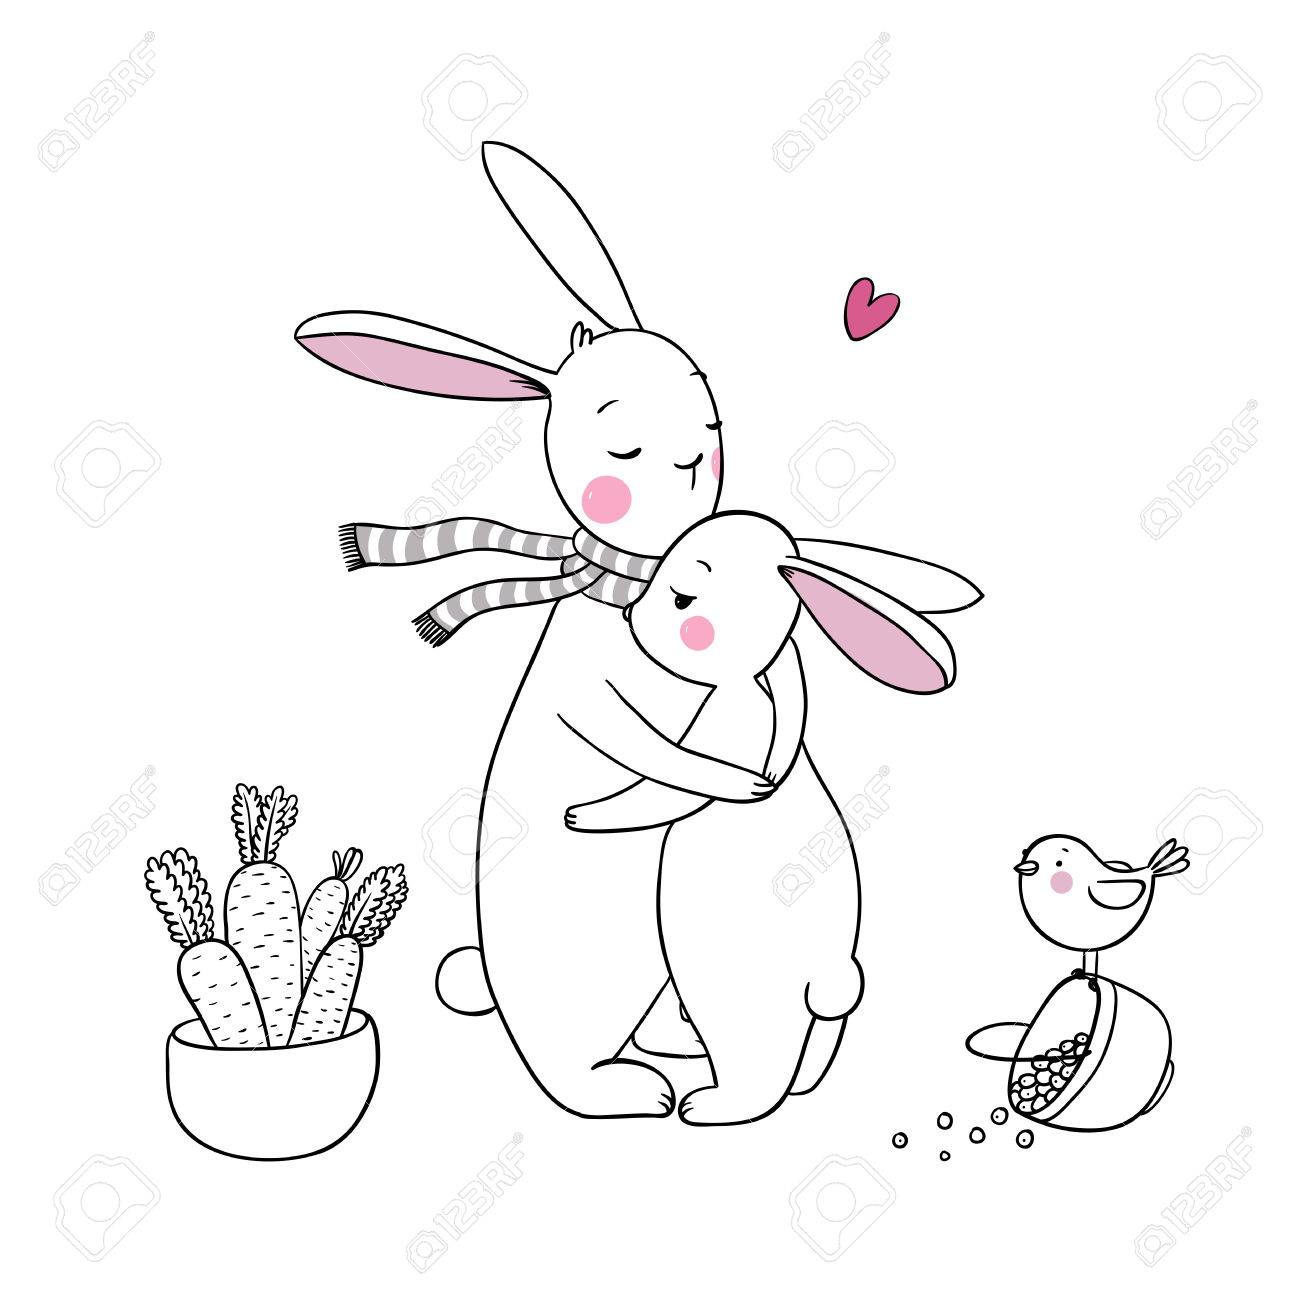 1300x1300 Cute Rabbits, A Basket Of Carrots And A Bird. Hand Drawing